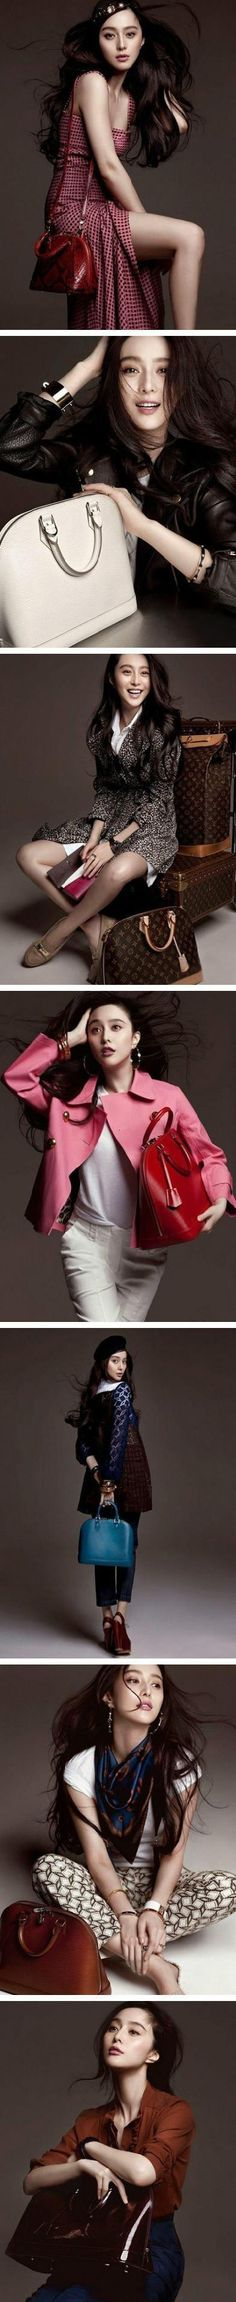 Louis Vuitton Handbags 2015 Hot Sale, LV Handbags Outlet Save 80% For You, Louis Vuitton So Cheap! Discount Site From Here, Check It Out. #Louis #Vuitton #Handbags#- Neverfull, Alma, Artsy, Wallets, Sunglasses,